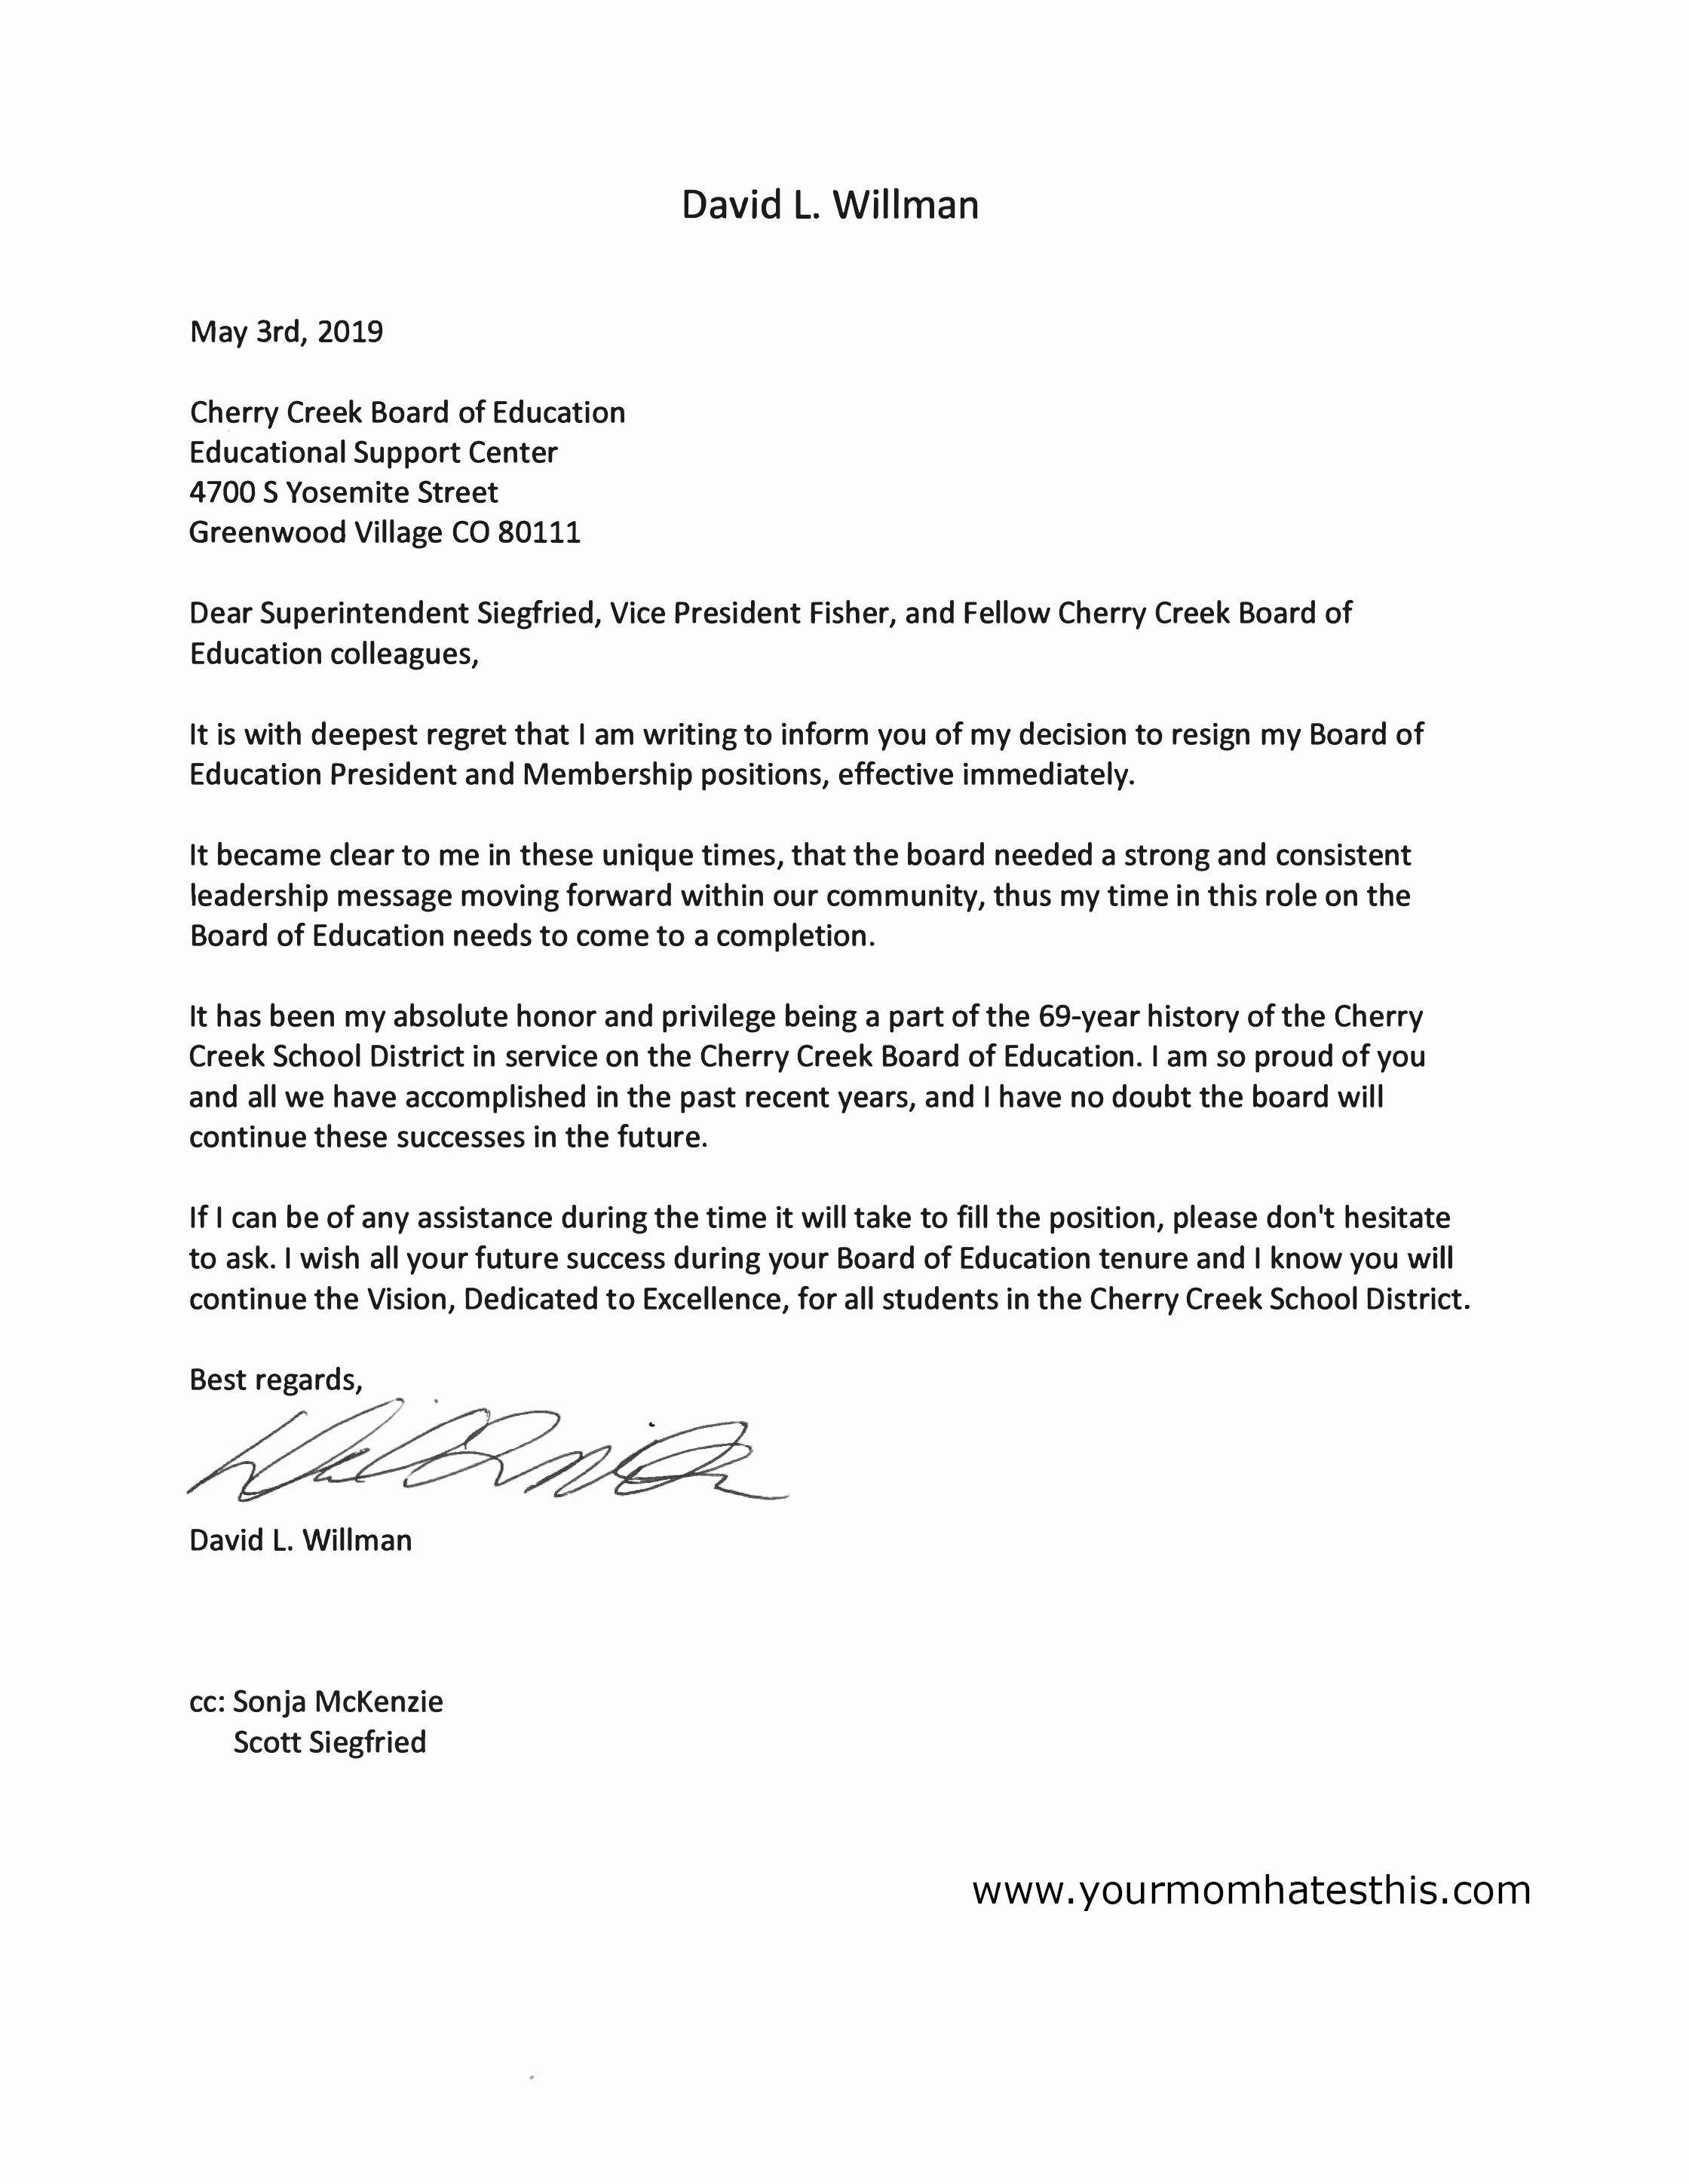 Resignation Letter Template Free Inspirational Download Resignation Letter Samples